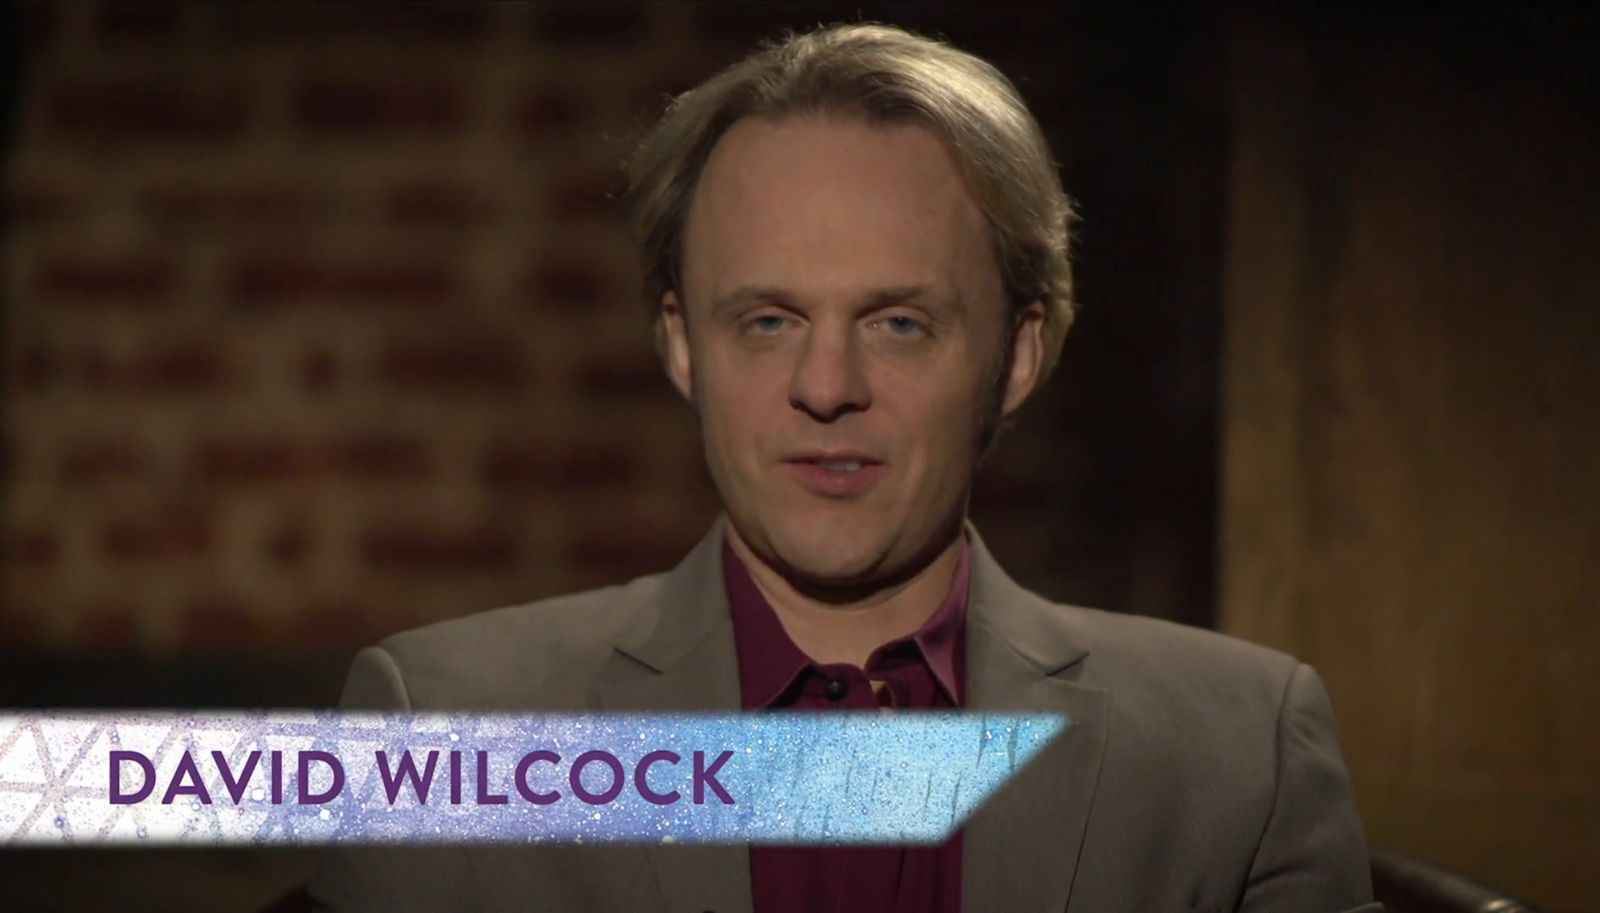 http://spherebeingalliance.com/media/img/1600x0/2016-09/David_Wilcock.jpg